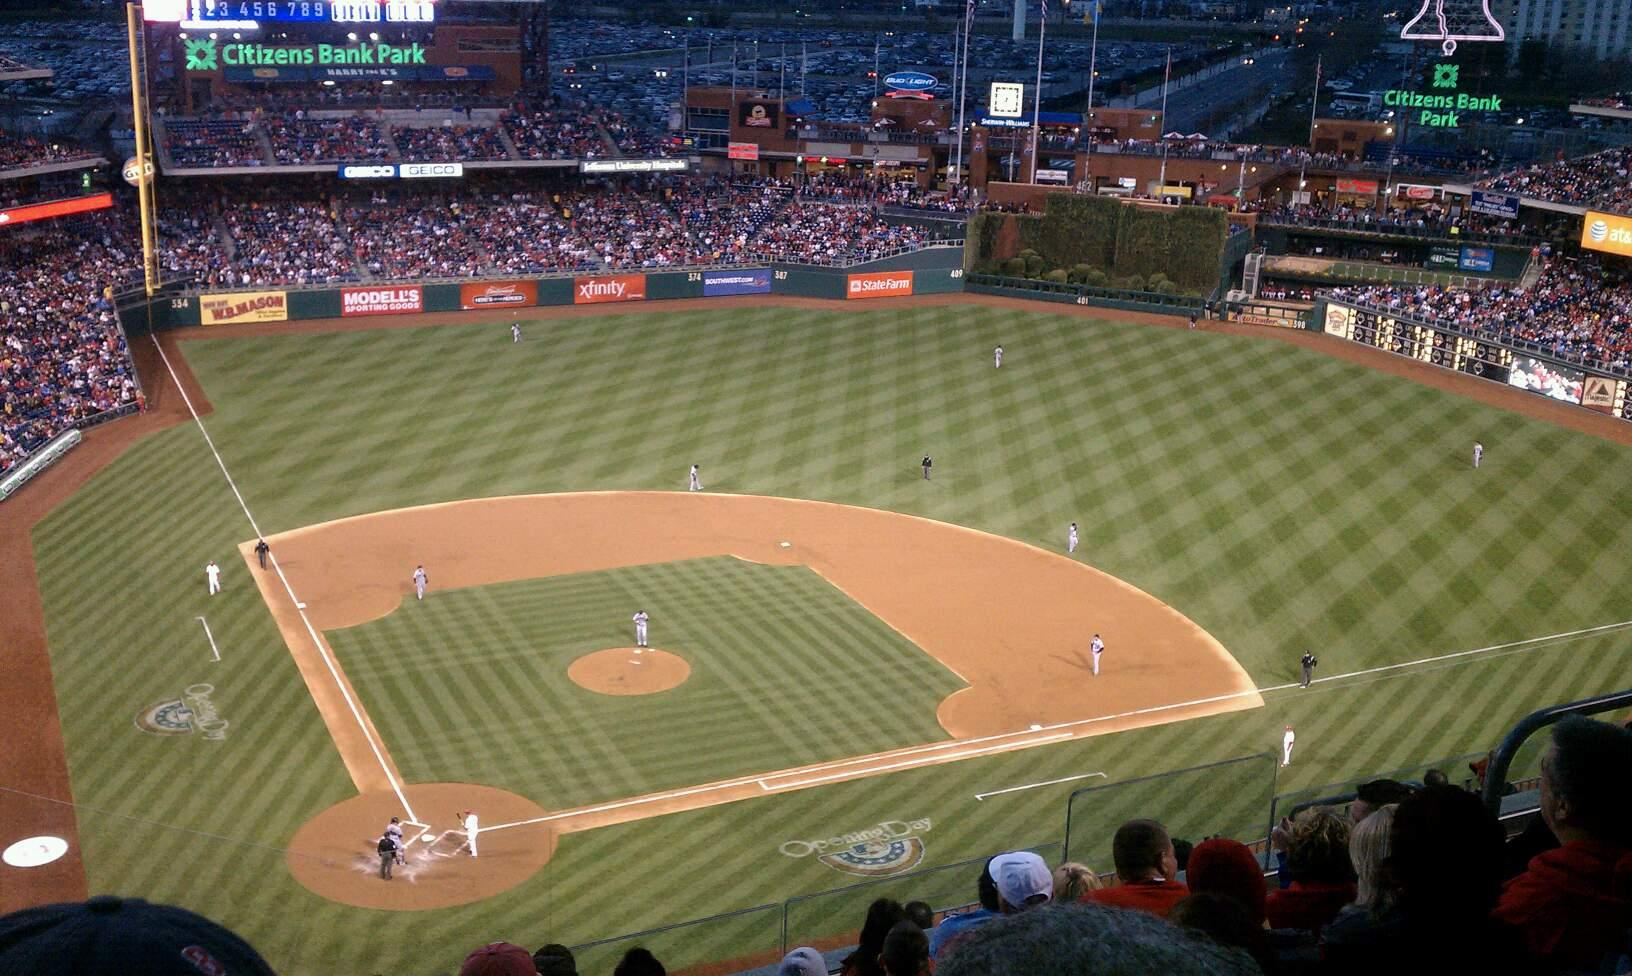 Citizens Bank Park Section 418 Row 8 Seat 10